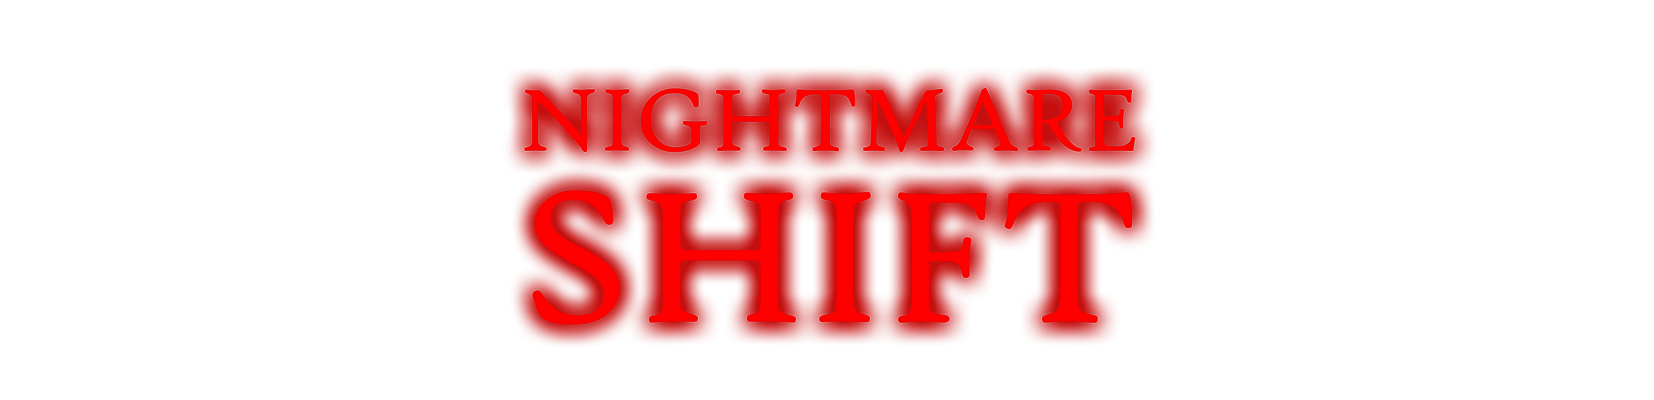 Nightmare Shift (RUS)